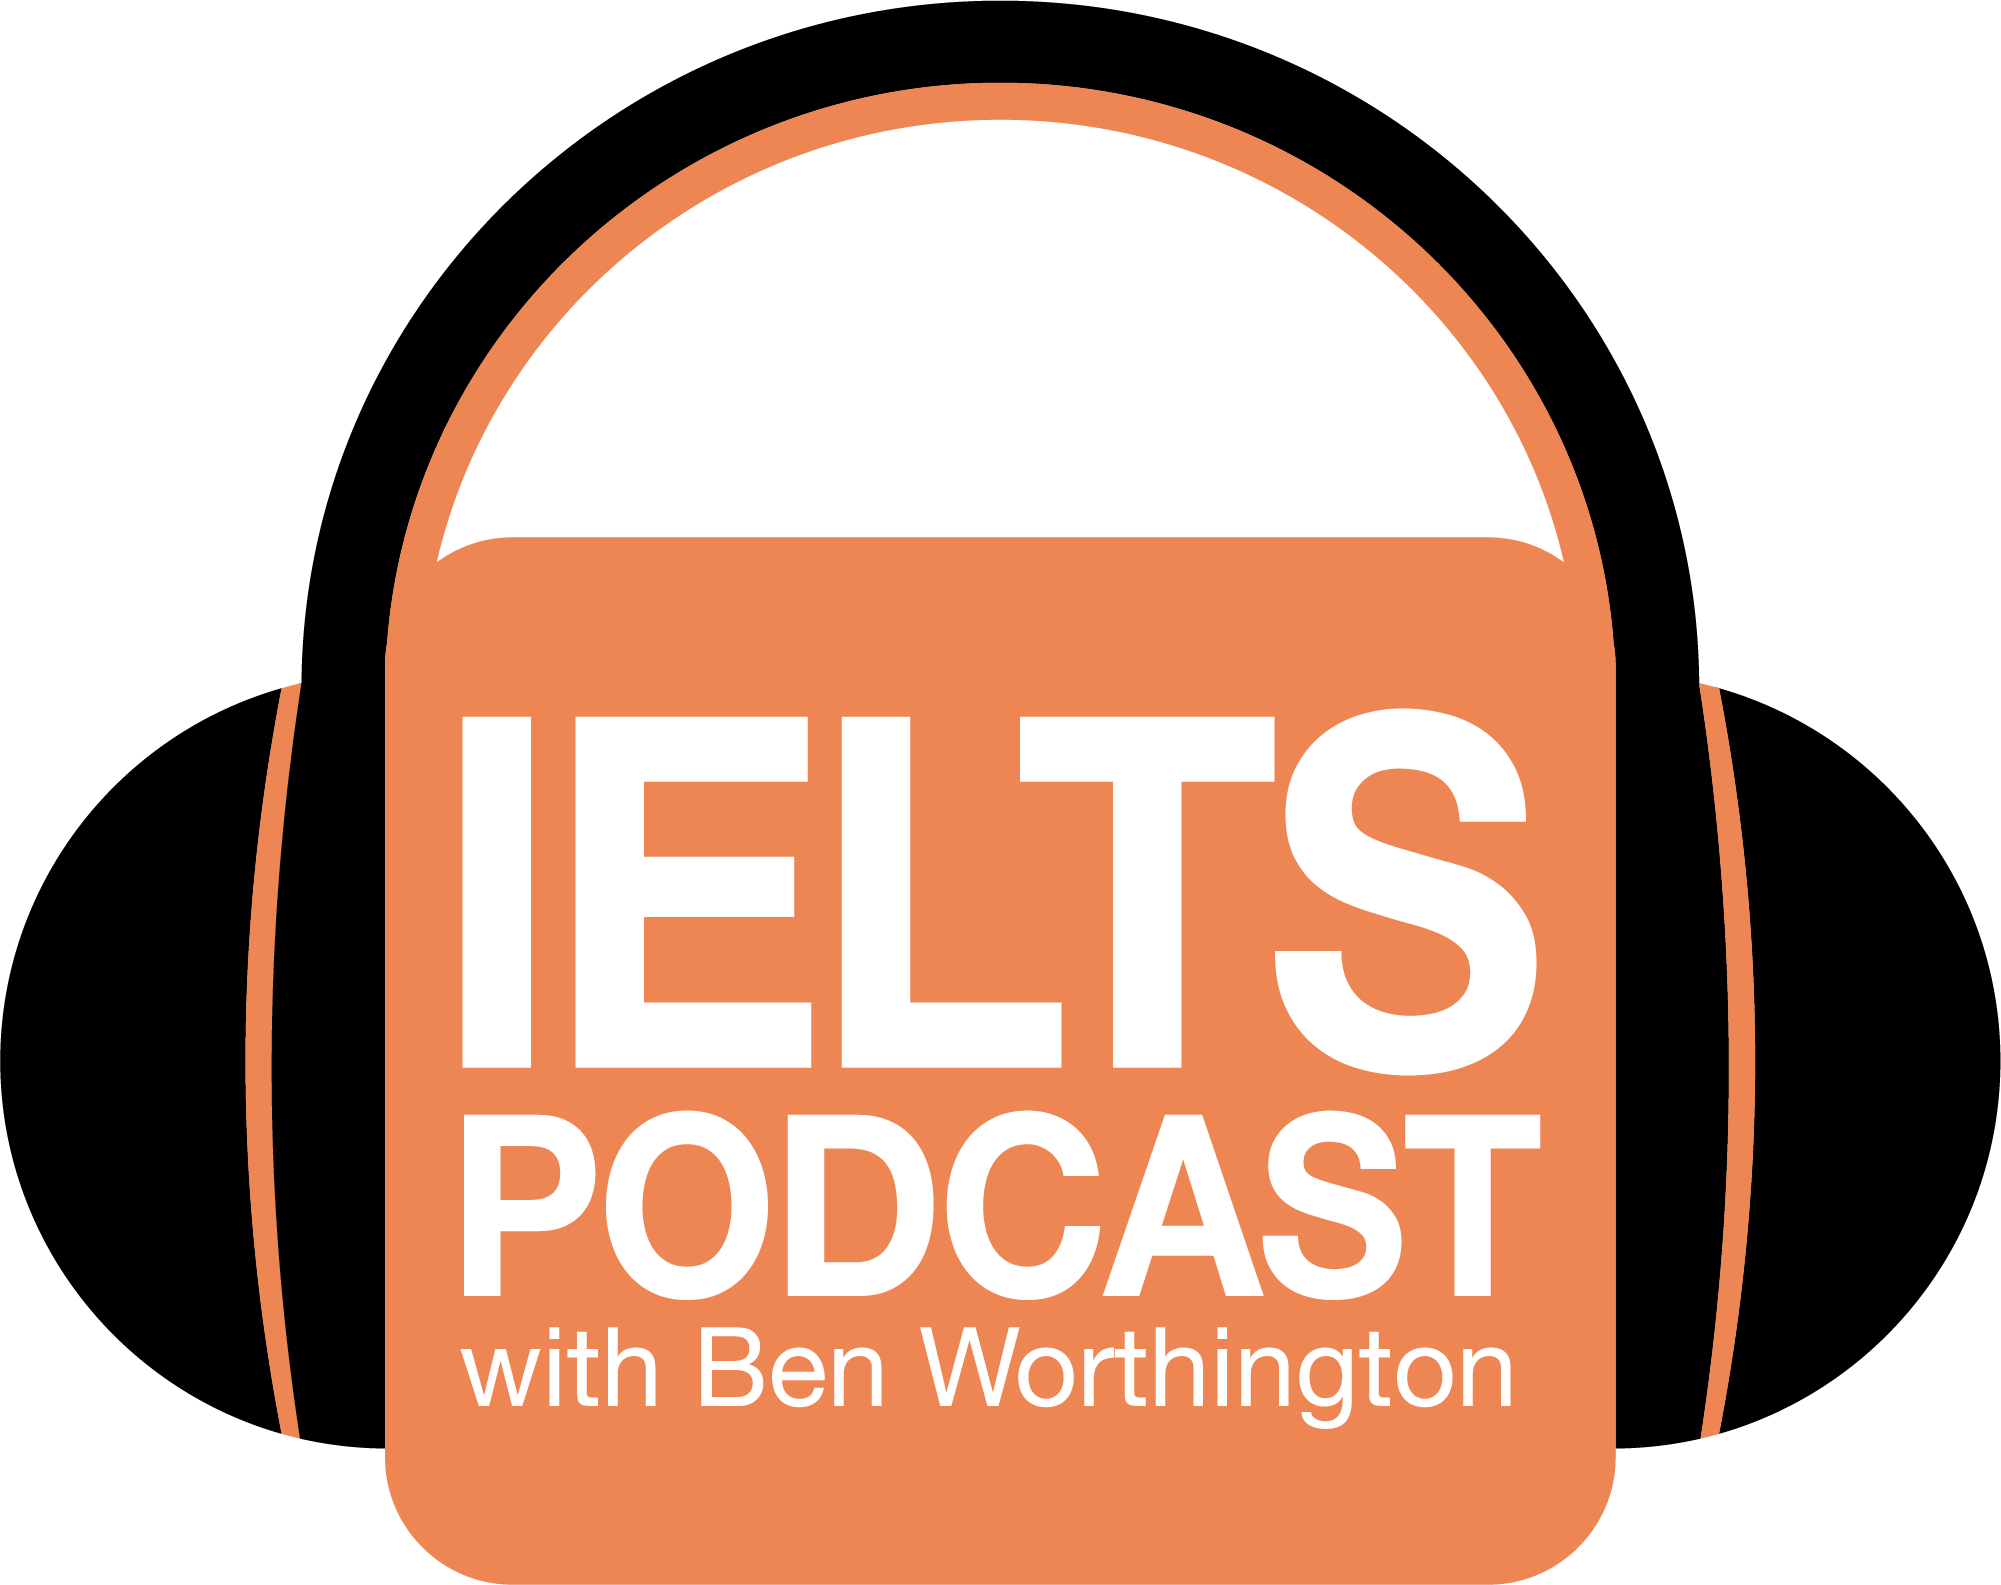 Interview with Ben Worthington, founder of IELTS Podcast